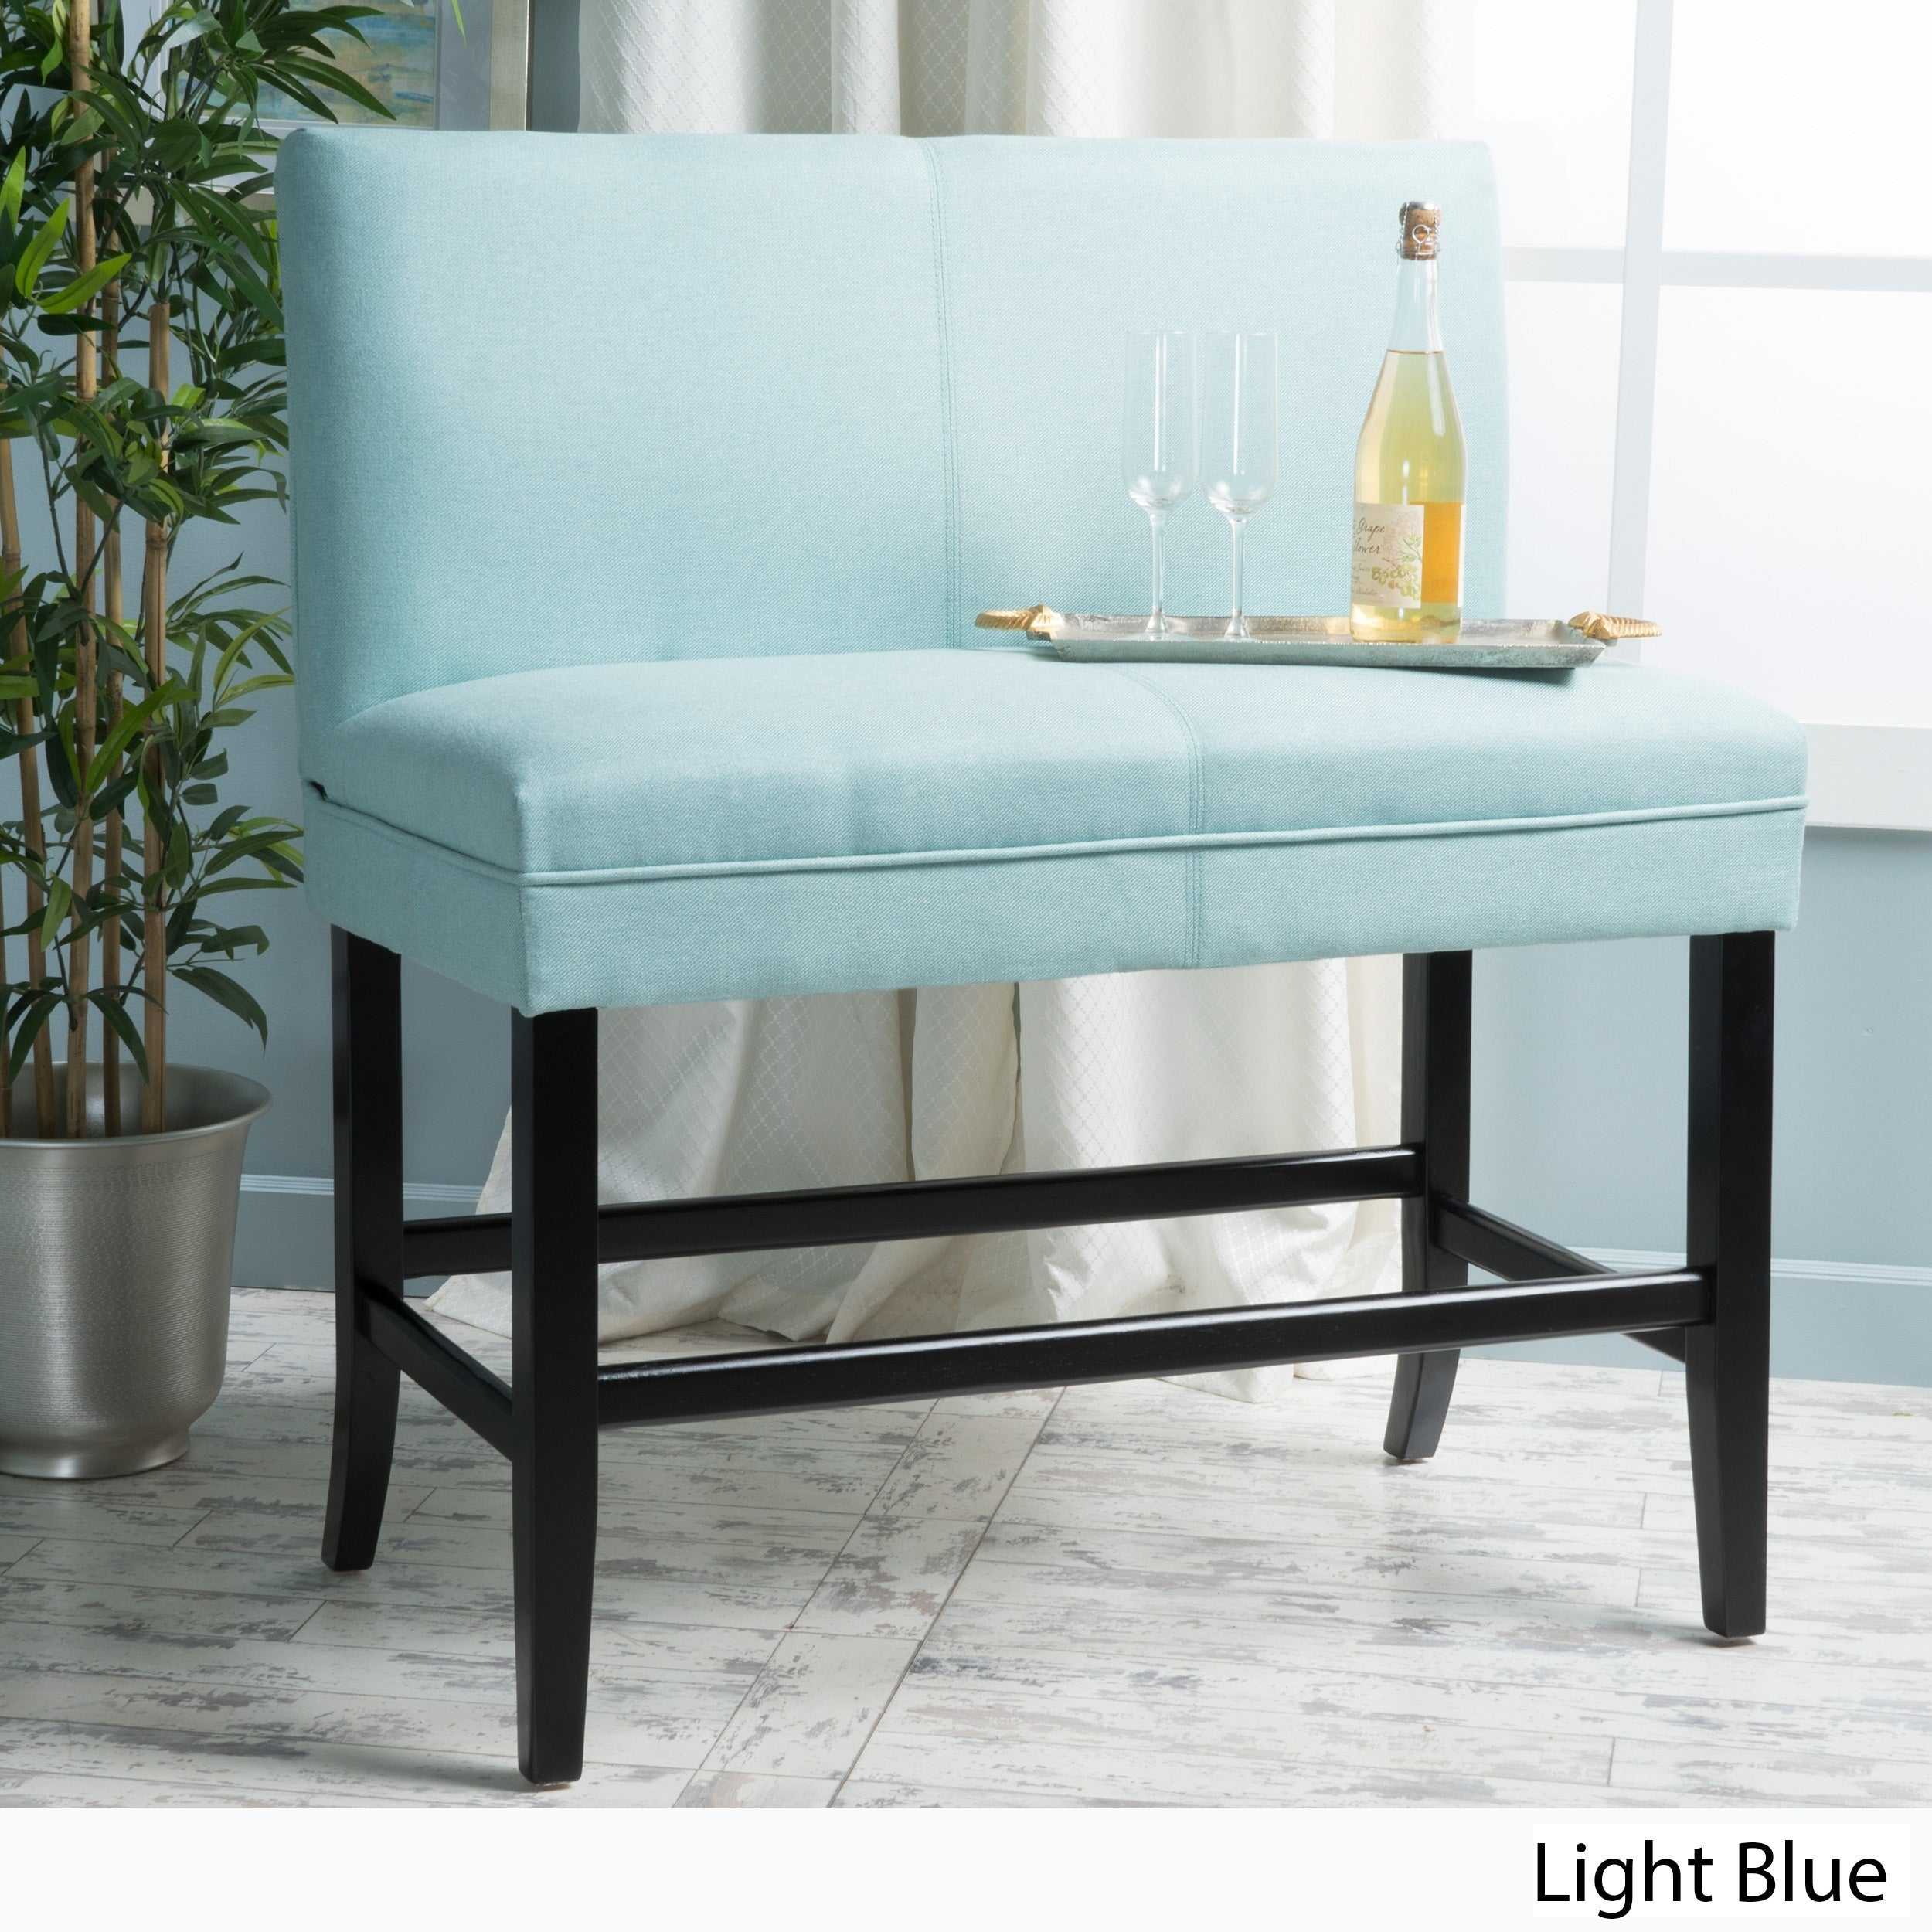 Buy Blue Counter & Bar Stools Online at Overstock.com | Our Best ...